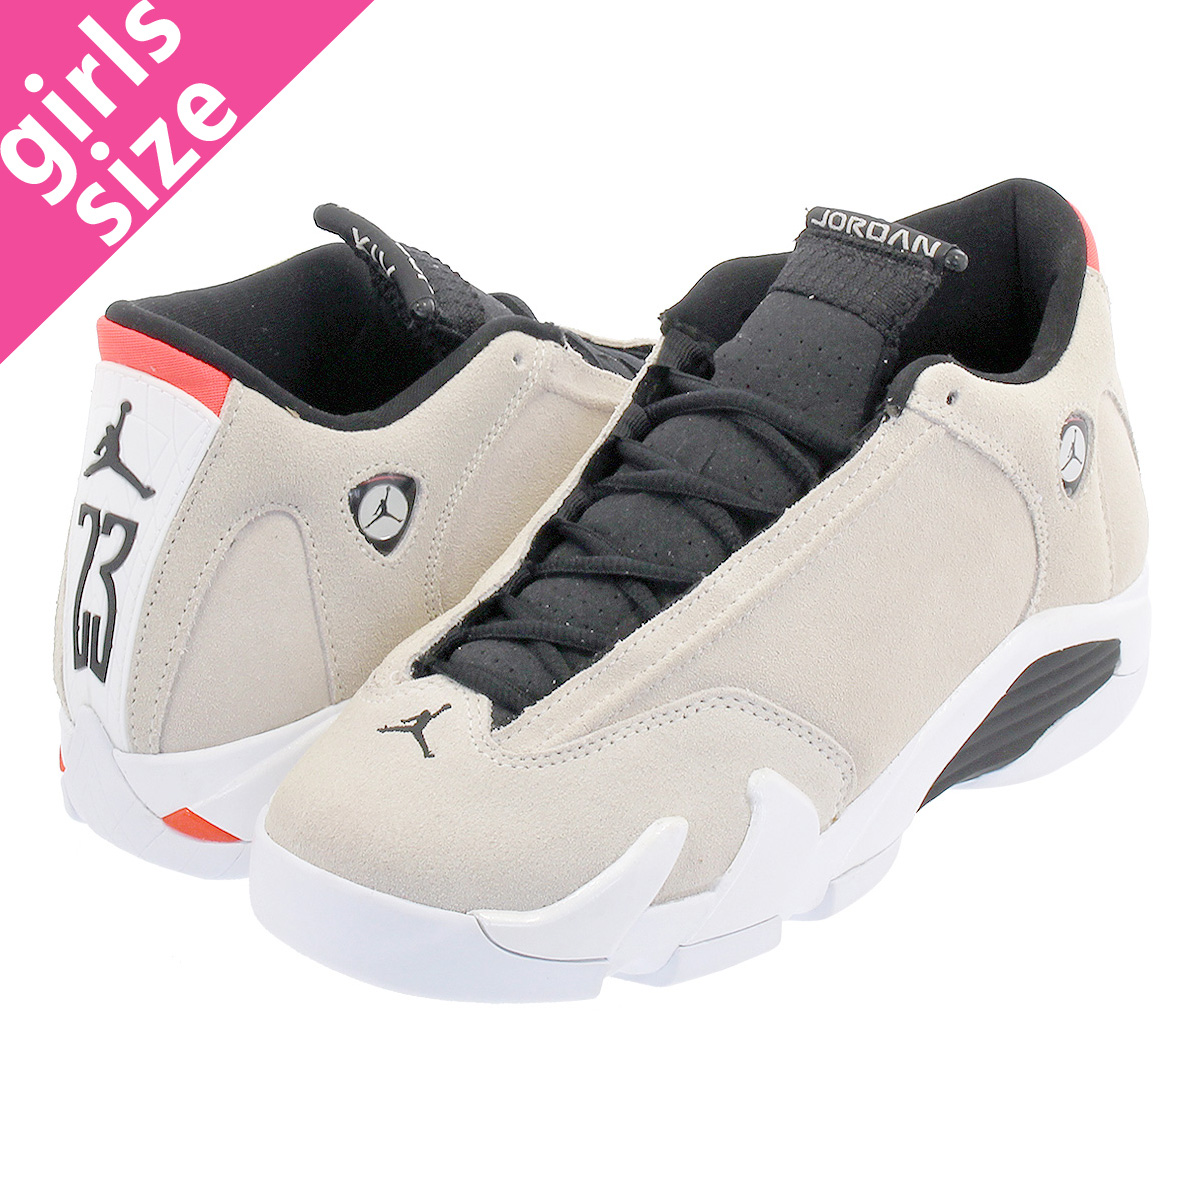 cheap for discount 0924b 0734e NIKE AIR JORDAN 14 RETRO BG Nike Air Jordan 14 nostalgic BG DESERT SAND BLACK WHITE INFRARED  23 487,524-021